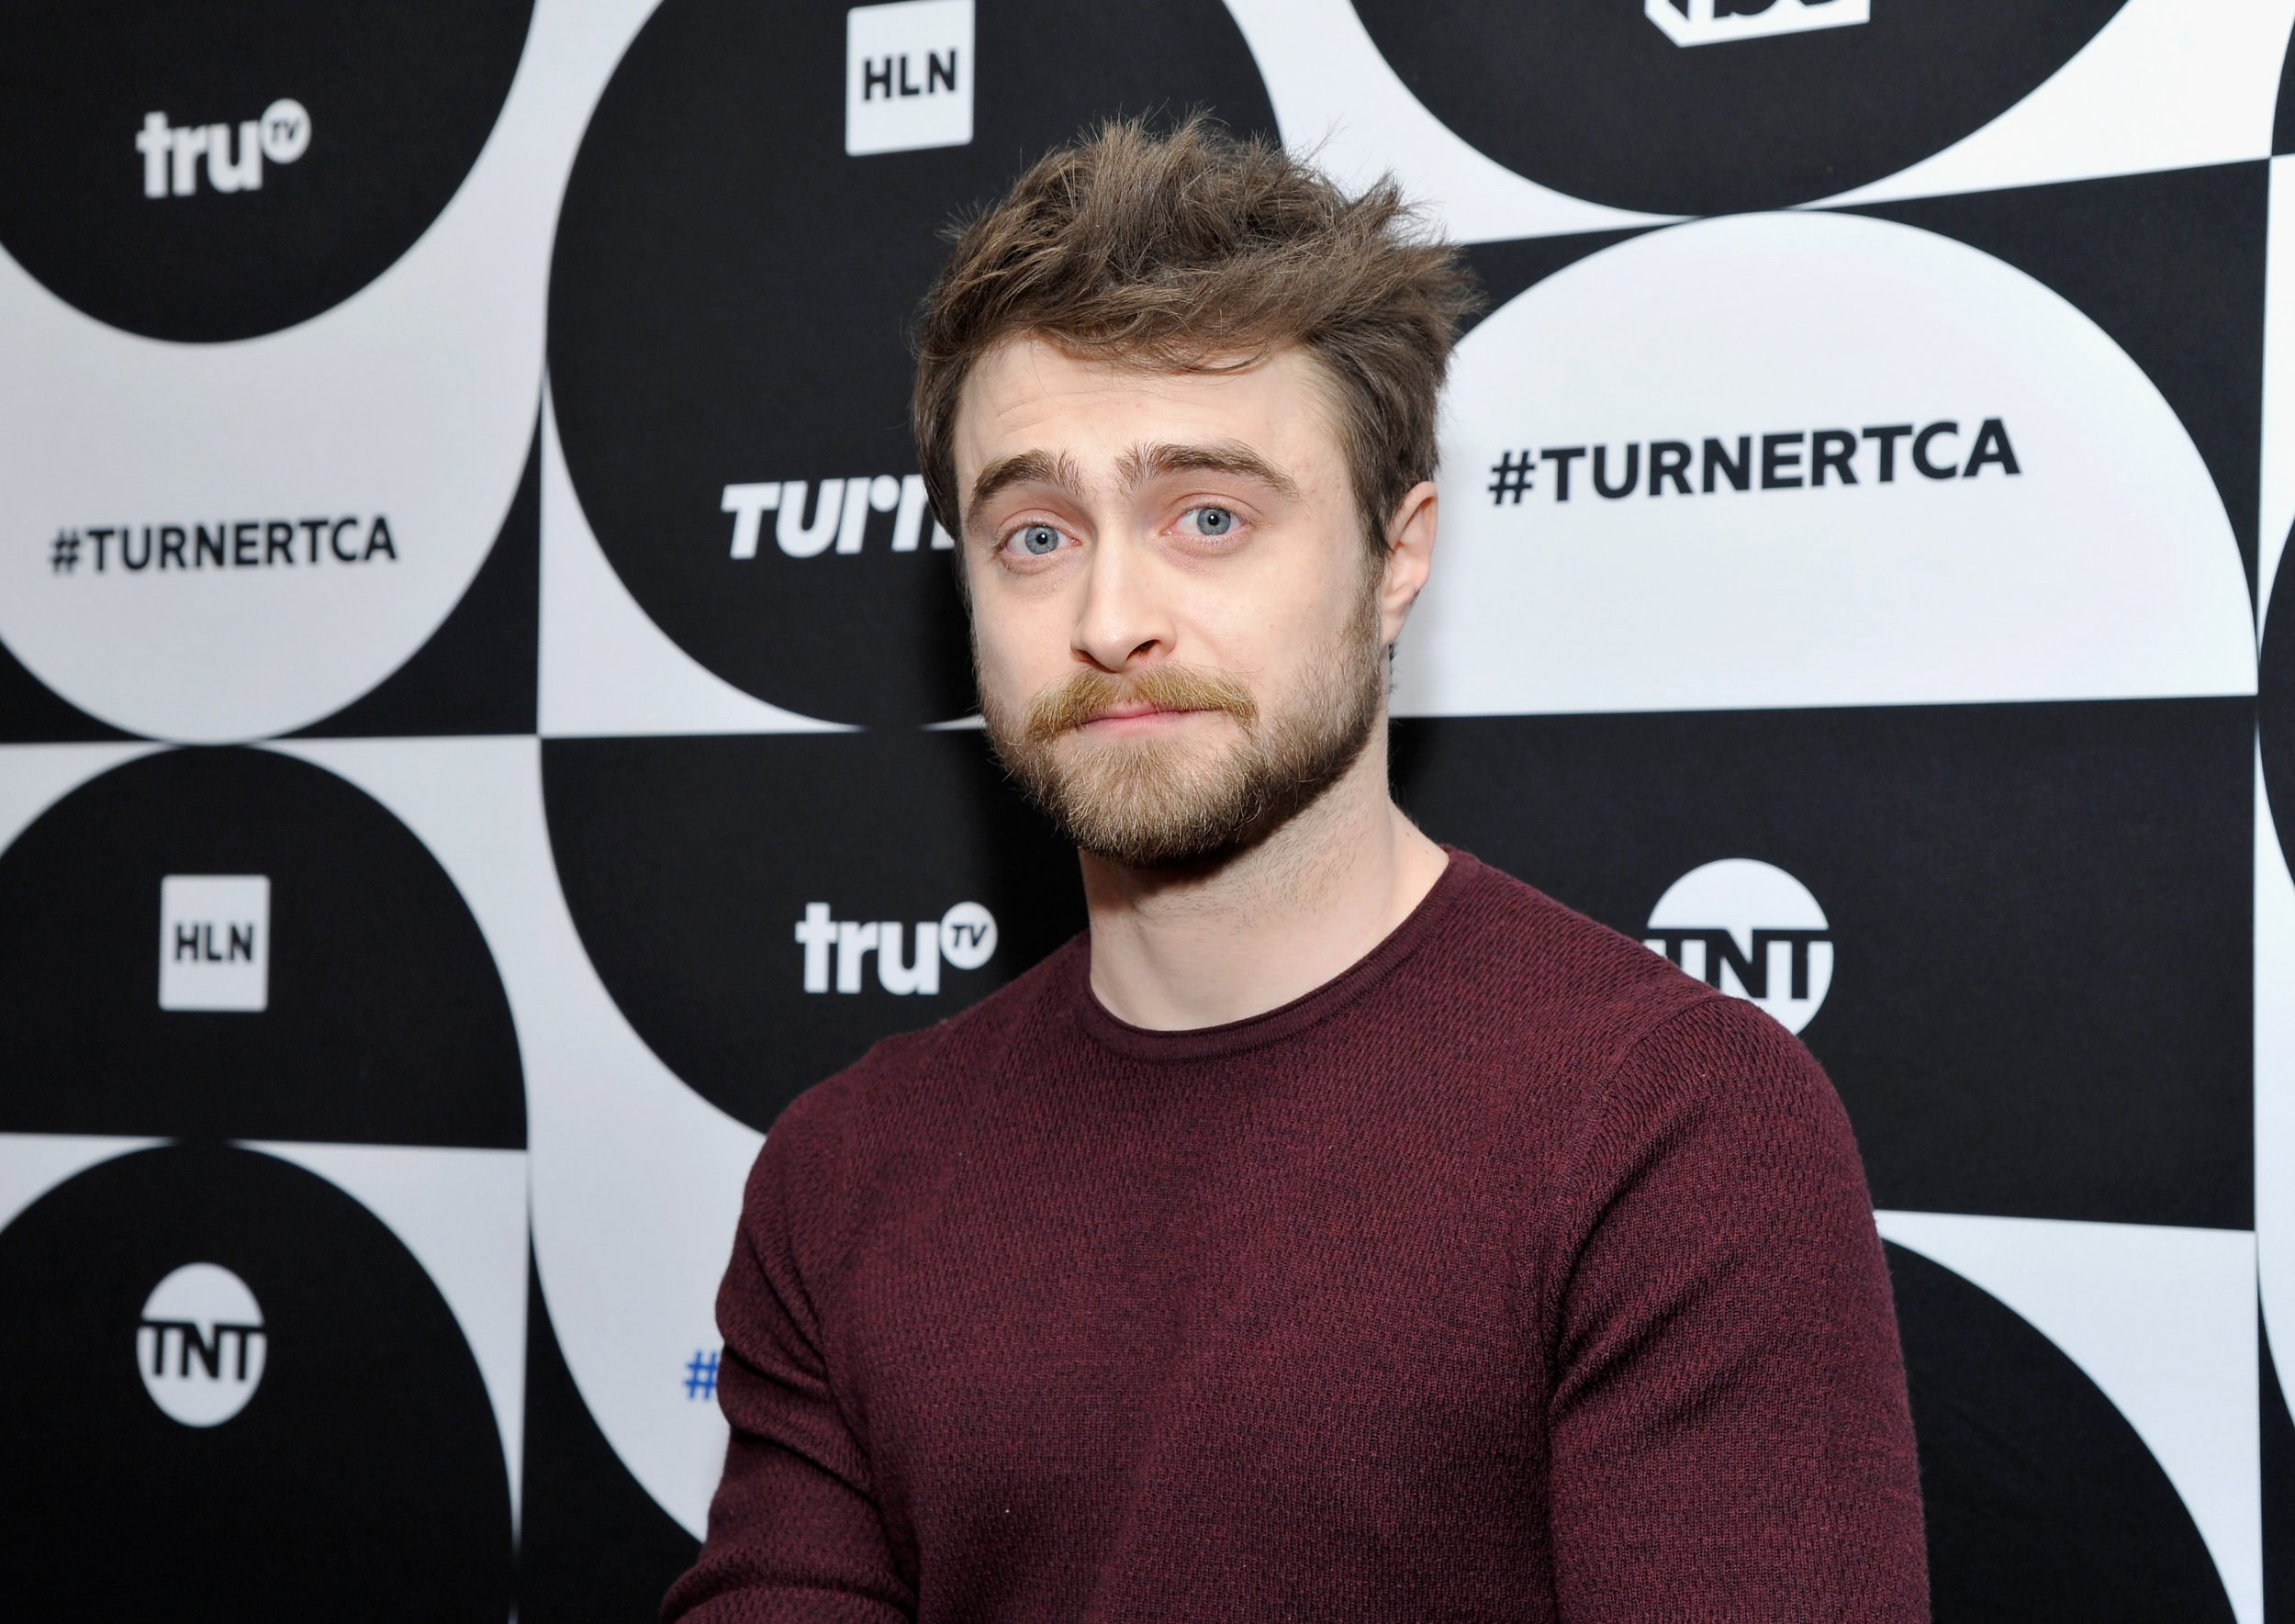 PASADENA, CA - FEBRUARY 11: Daniel Radcliffe of the television show 'Miracle Workers' poses in the green room during the TCA Turner Winter Press Tour 2019 at The Langham Huntington Hotel and Spa on February 11, 2019 in Pasadena, California. 505702 (Photo by John Sciulli/Getty Images for Turner)